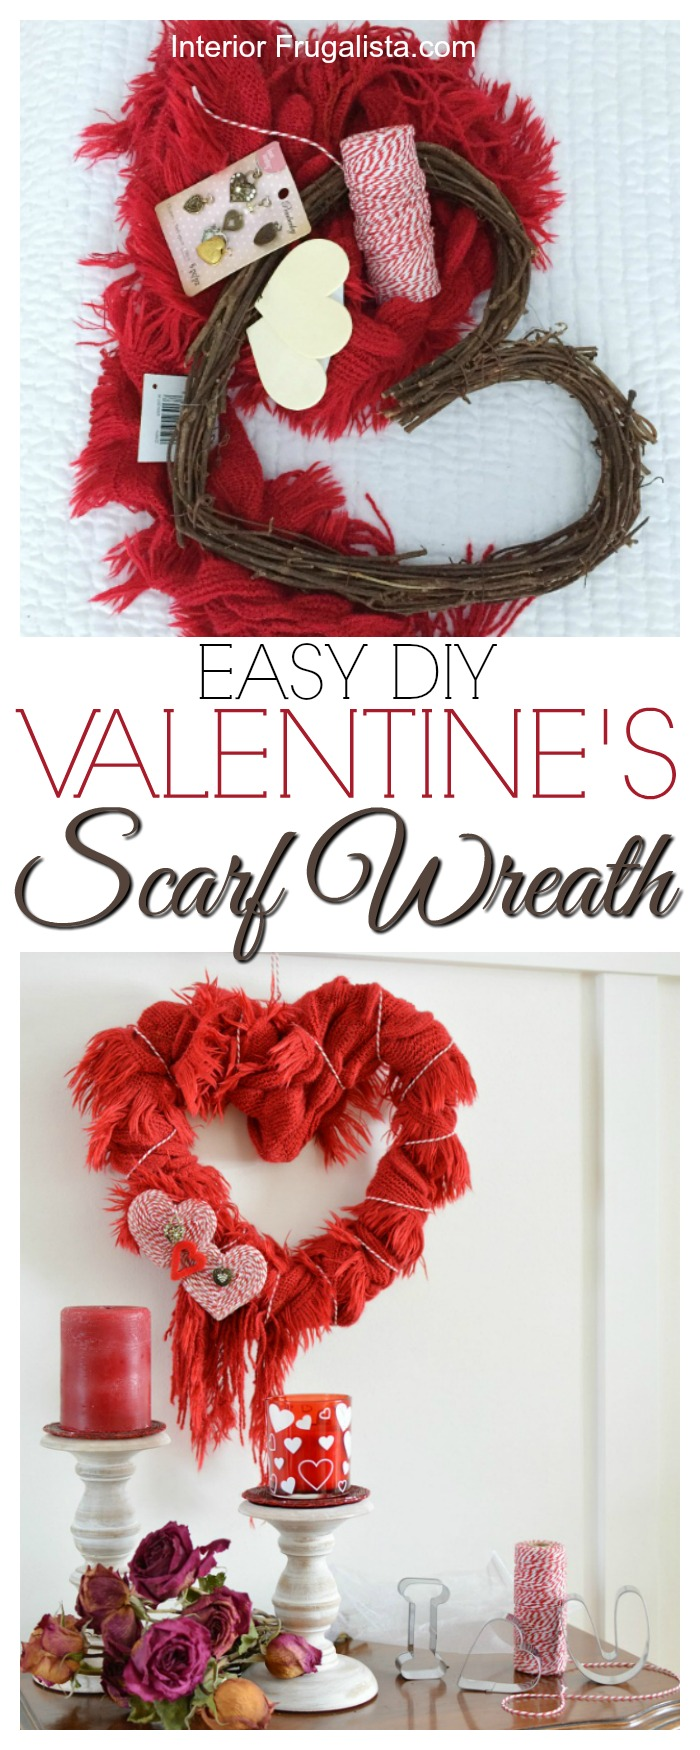 A quick, easy, and budget-friendly Valentine heart wreath idea made with a recycled red scarf. Once Valentine's Day is over, it can be worn again. #valentinewreath #heartwreath #scarfwreath #valentinecraft